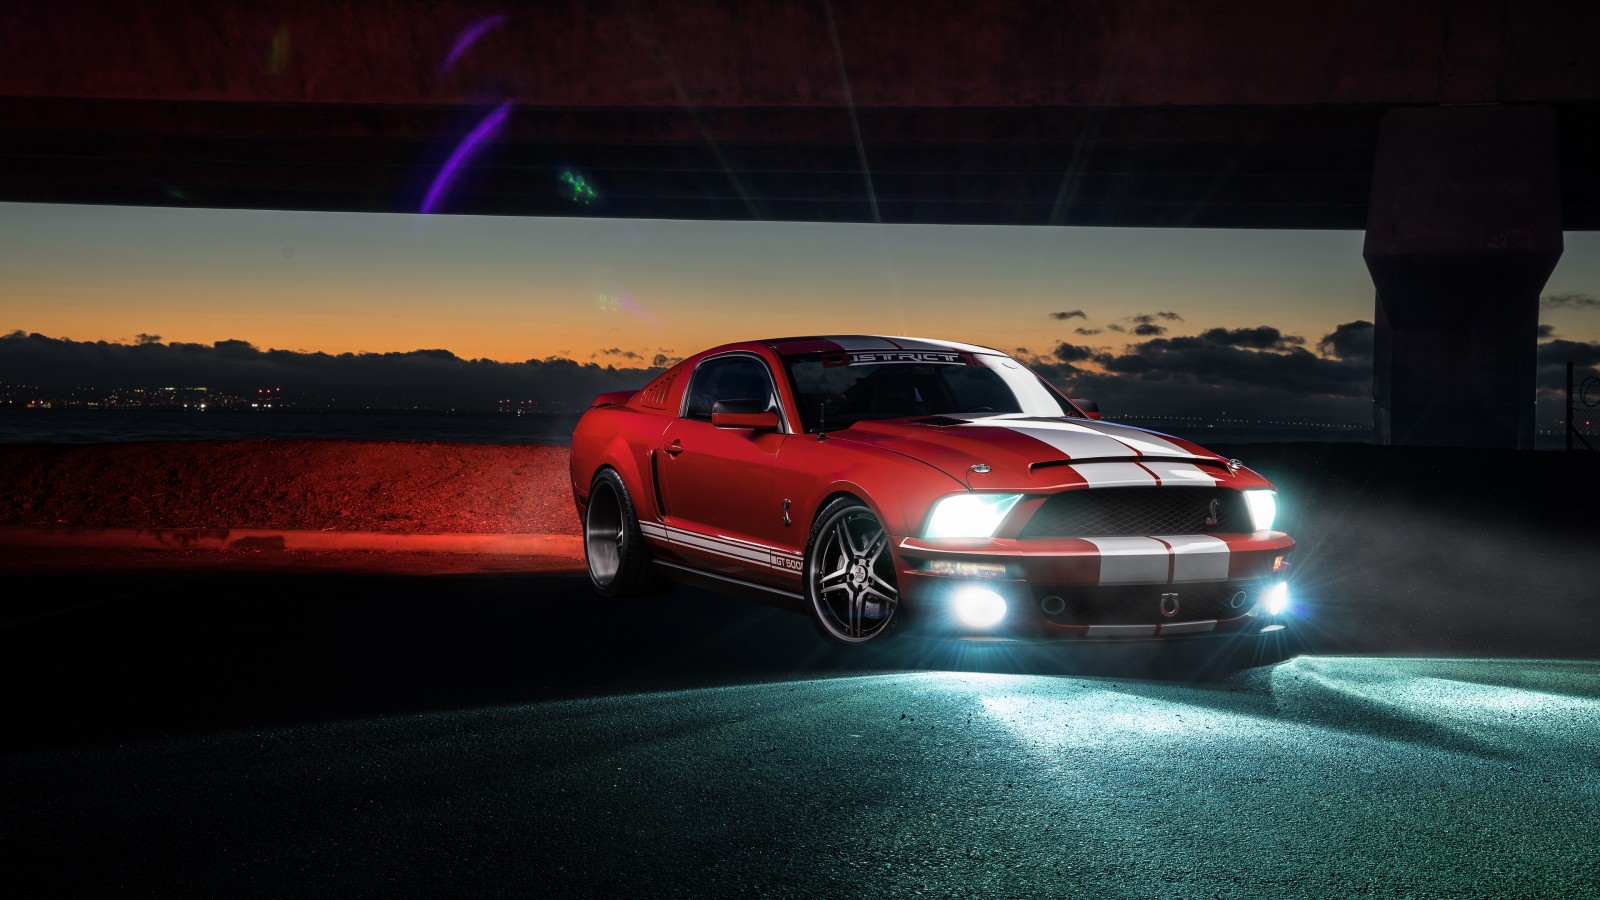 Ford Mustang Shelby Gt500 Wallpaper Hd Car Wallpapers